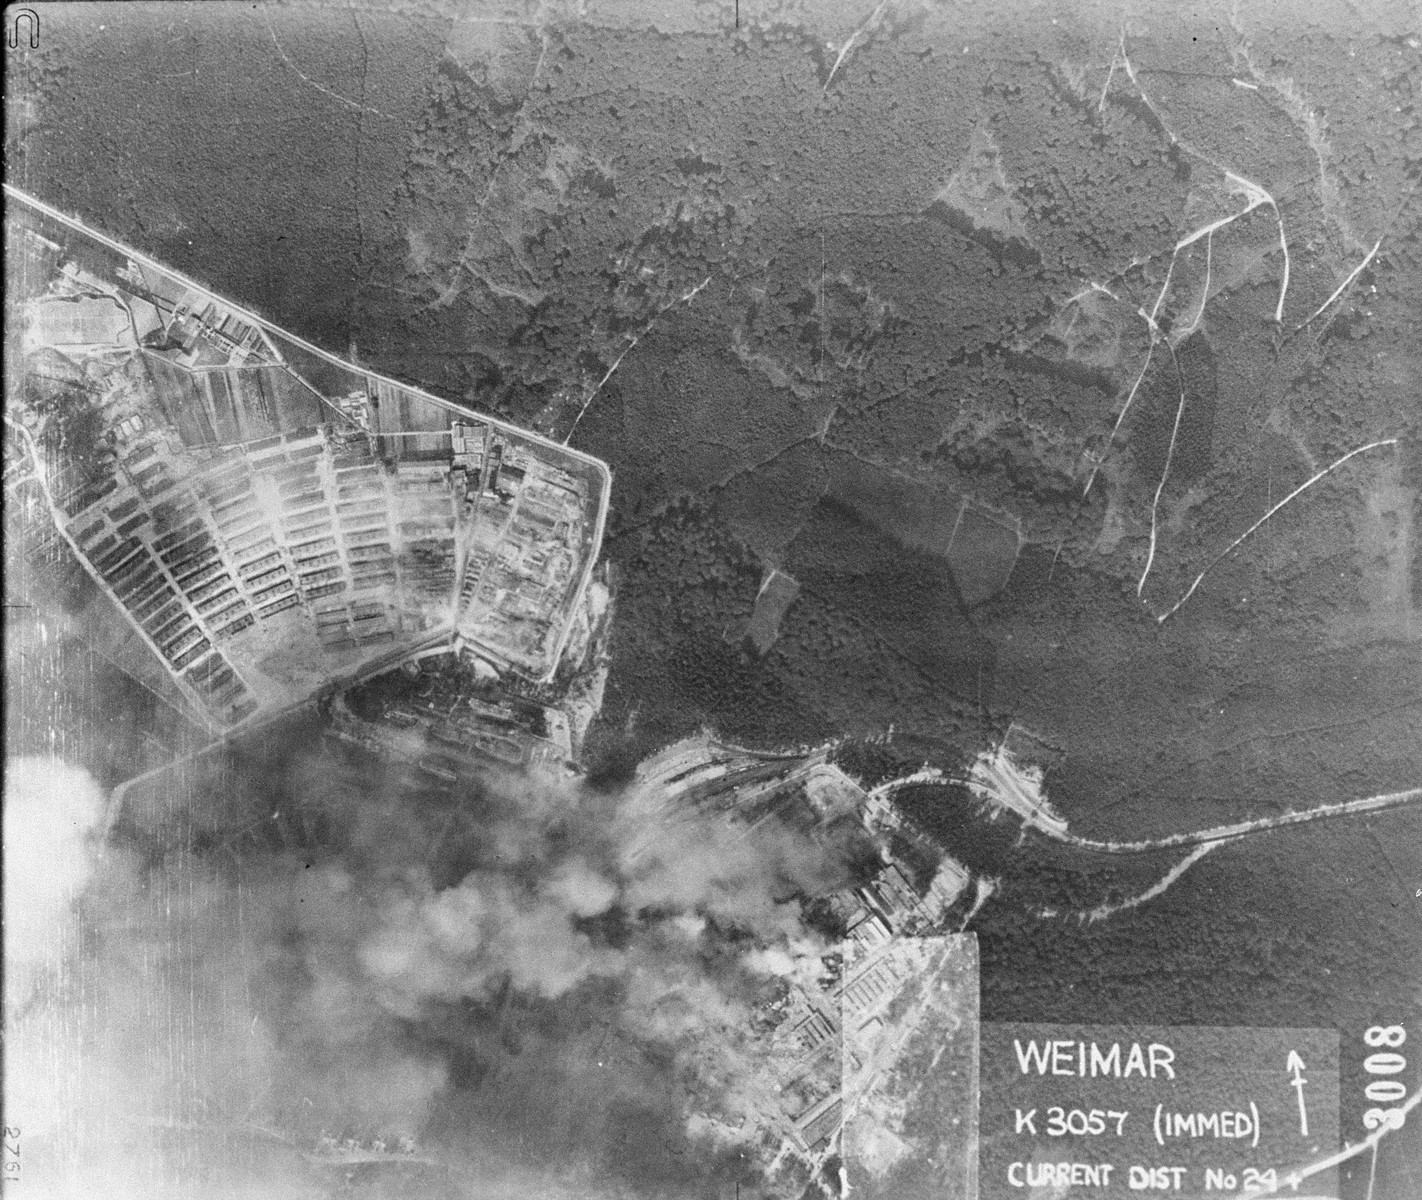 An aerial photograph of Buchenwald concentration camp showing the destruction of the munitions factory and storage area of the camp by American bombers.